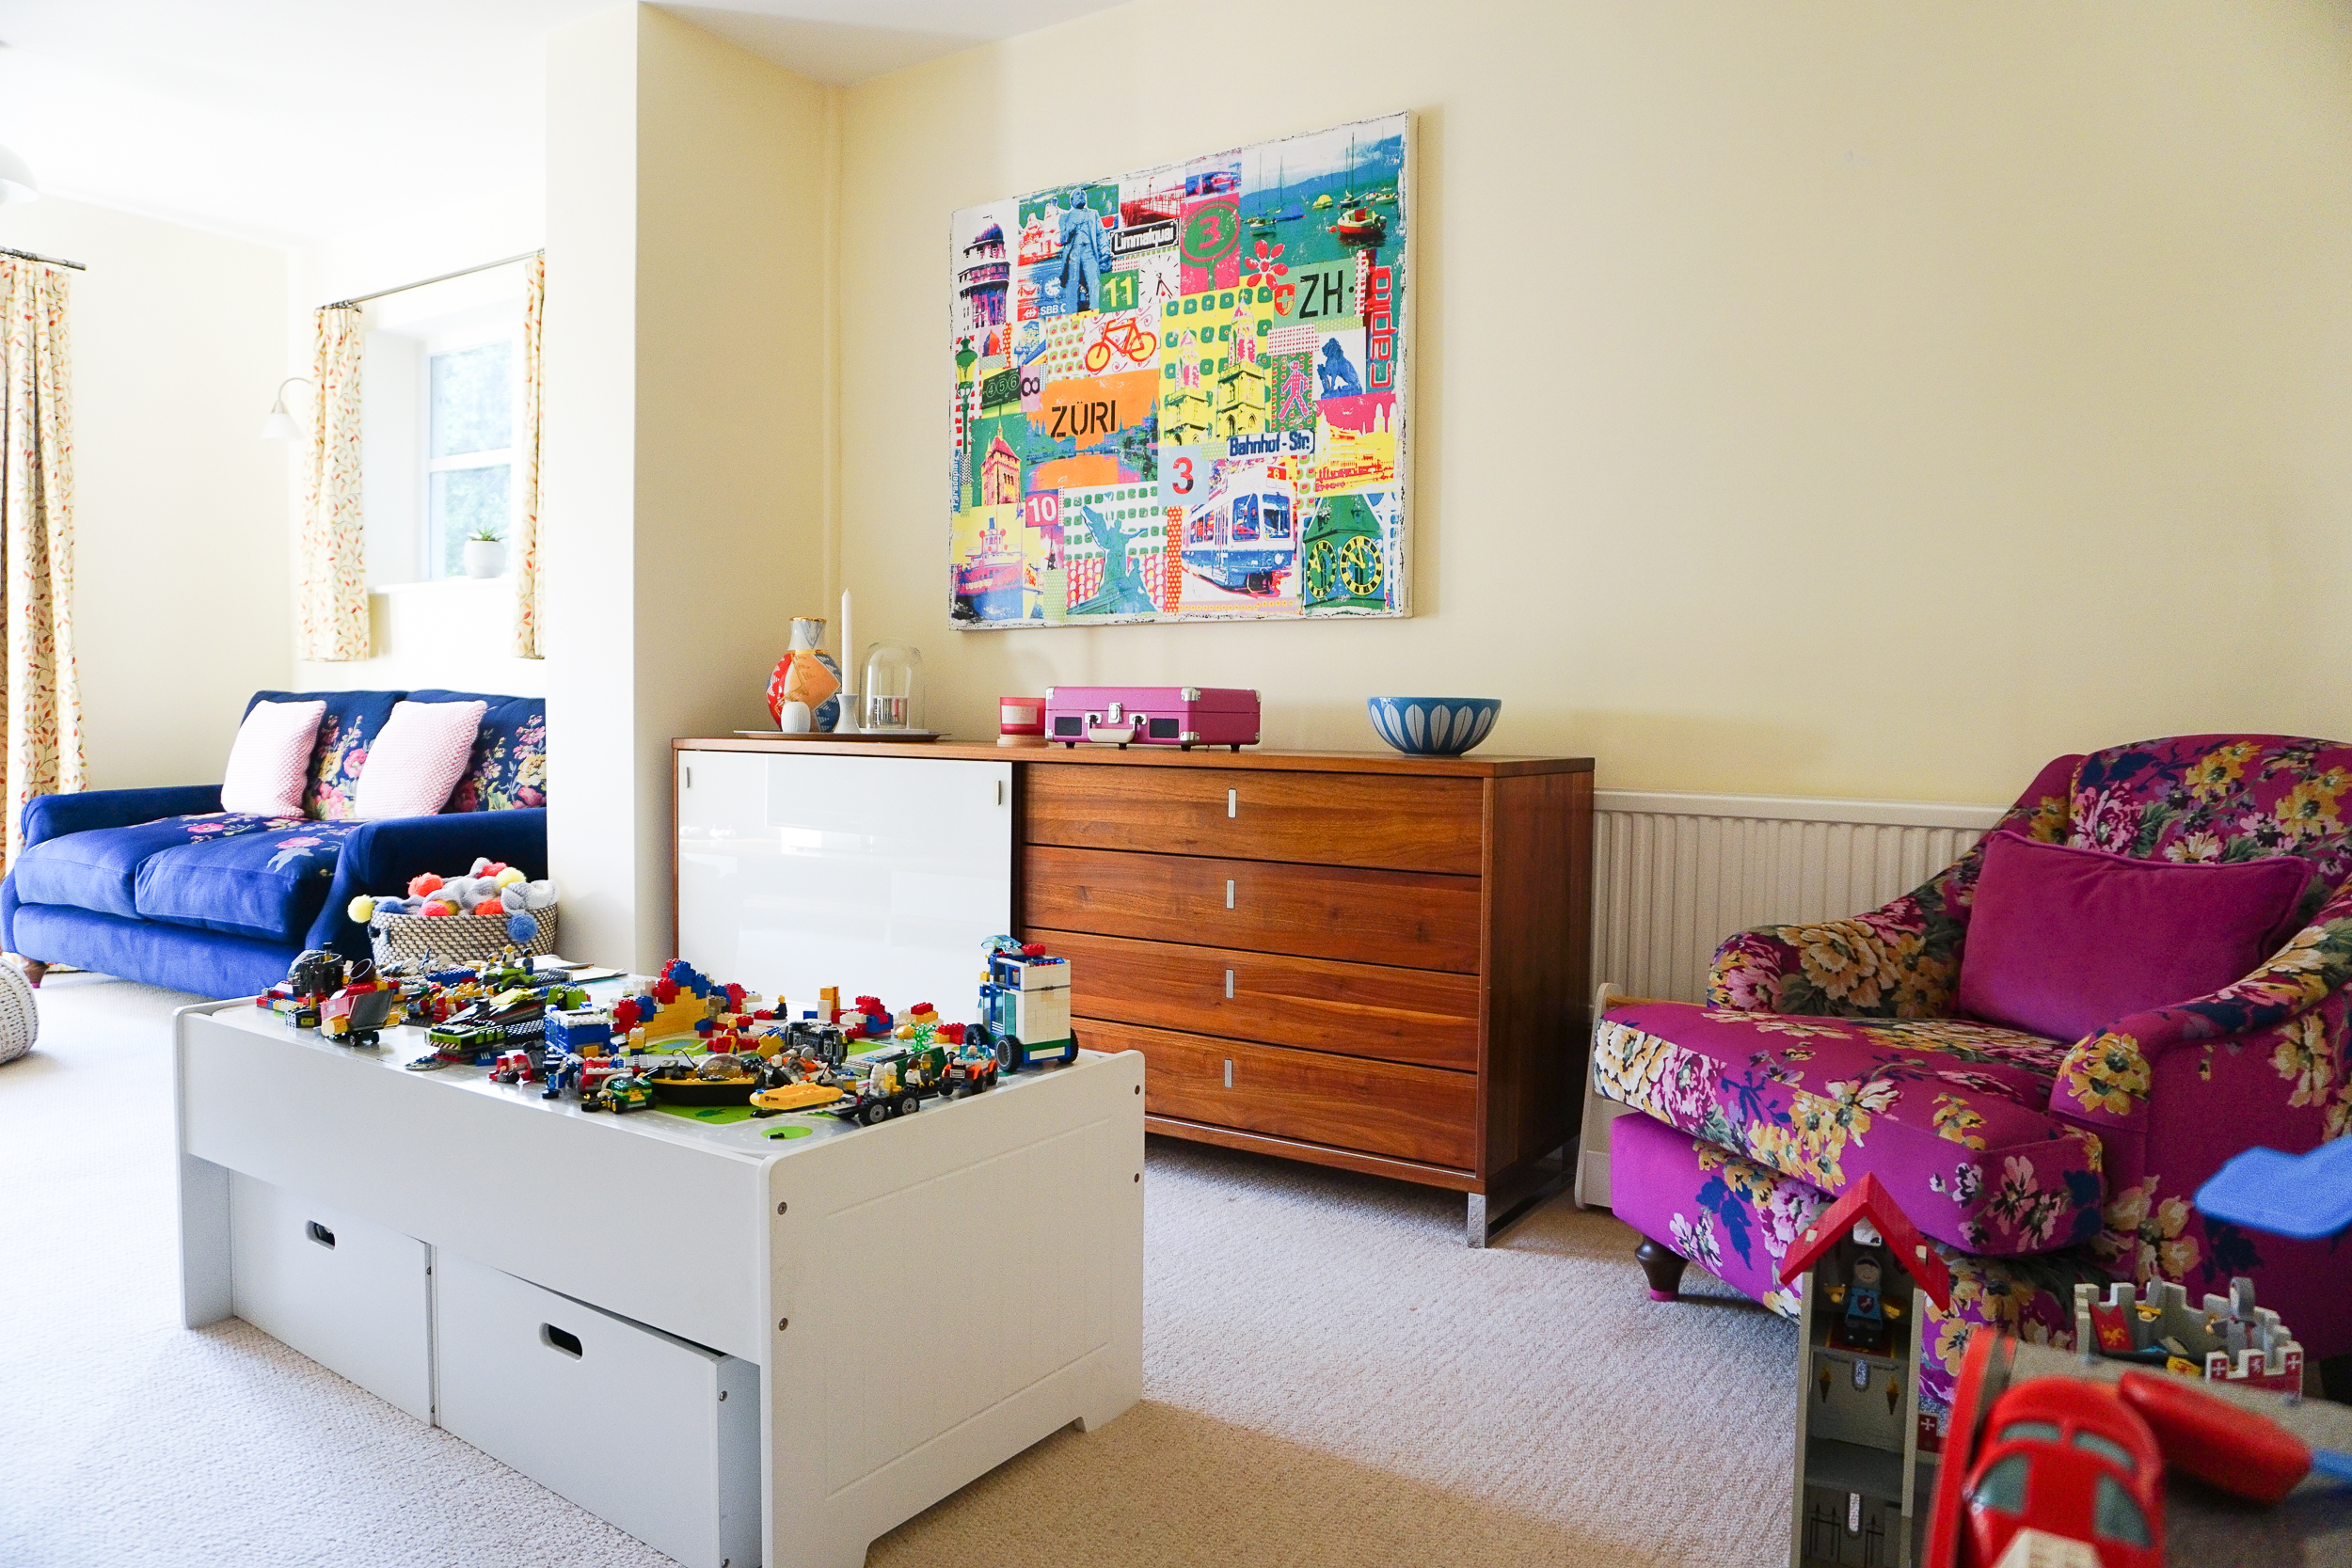 Choosing parquet flooring for the playroom with Woodpecker